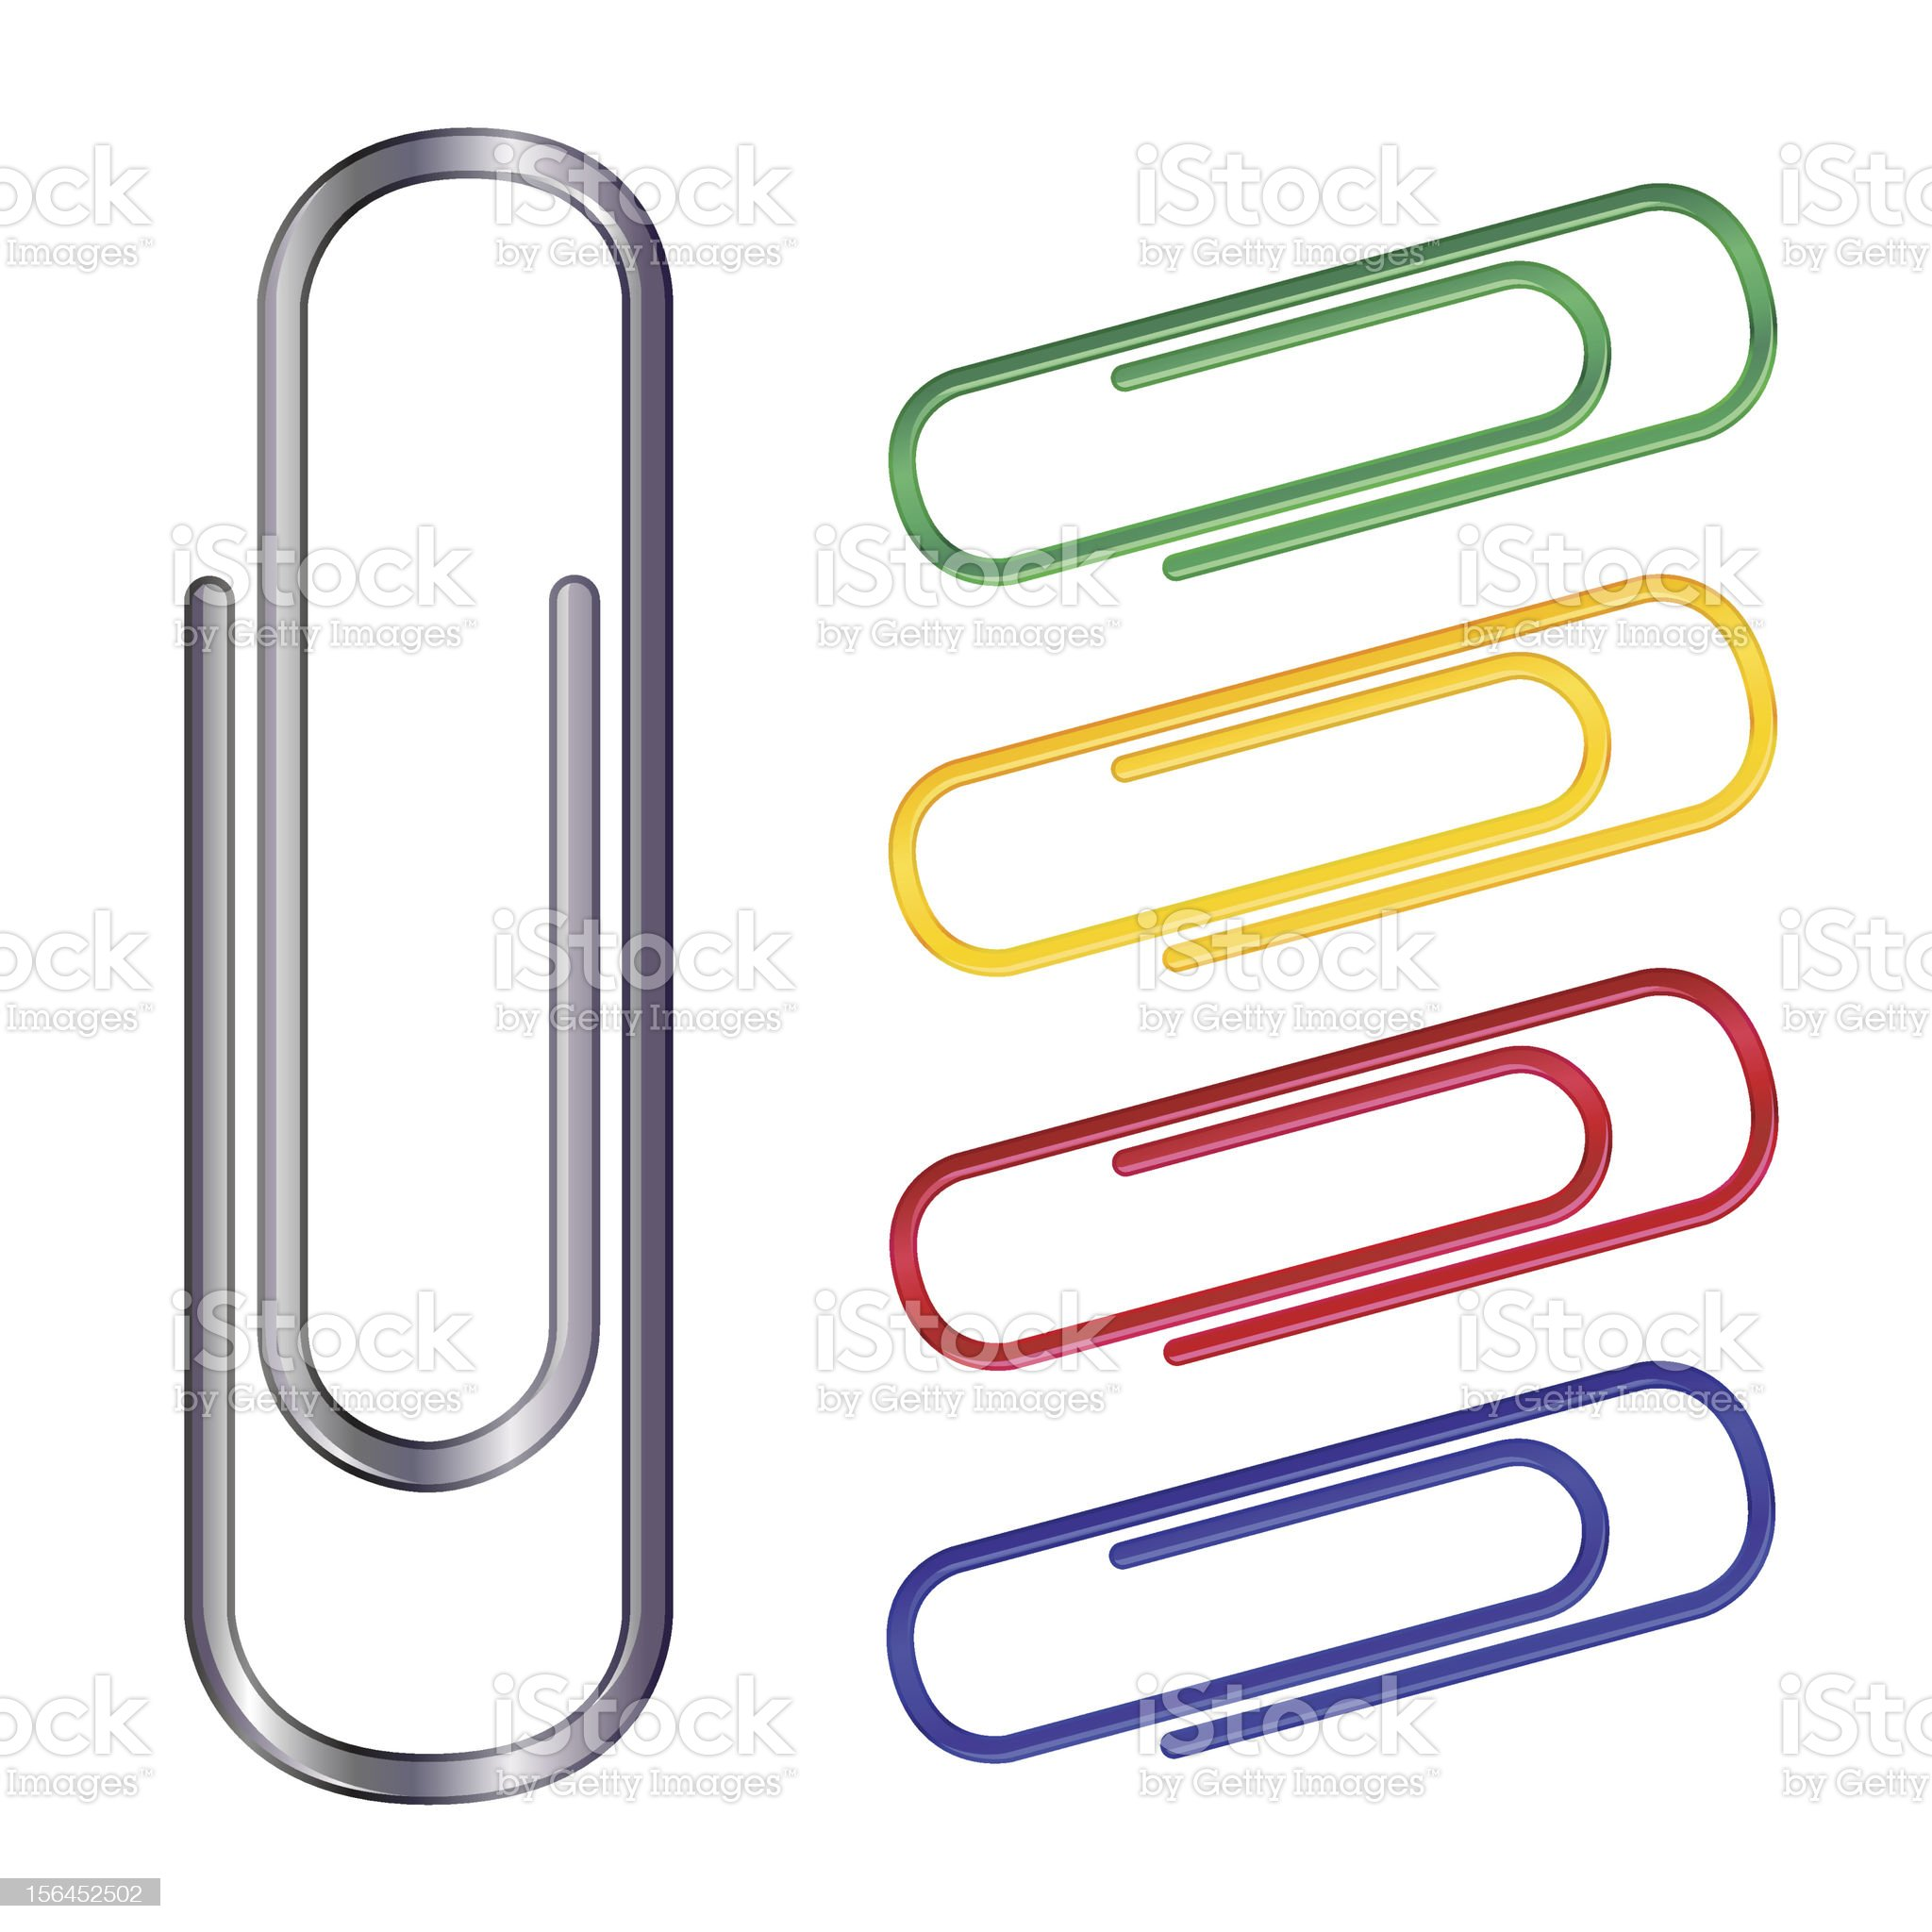 Five paperclips of various colors isolated on white royalty-free stock vector art